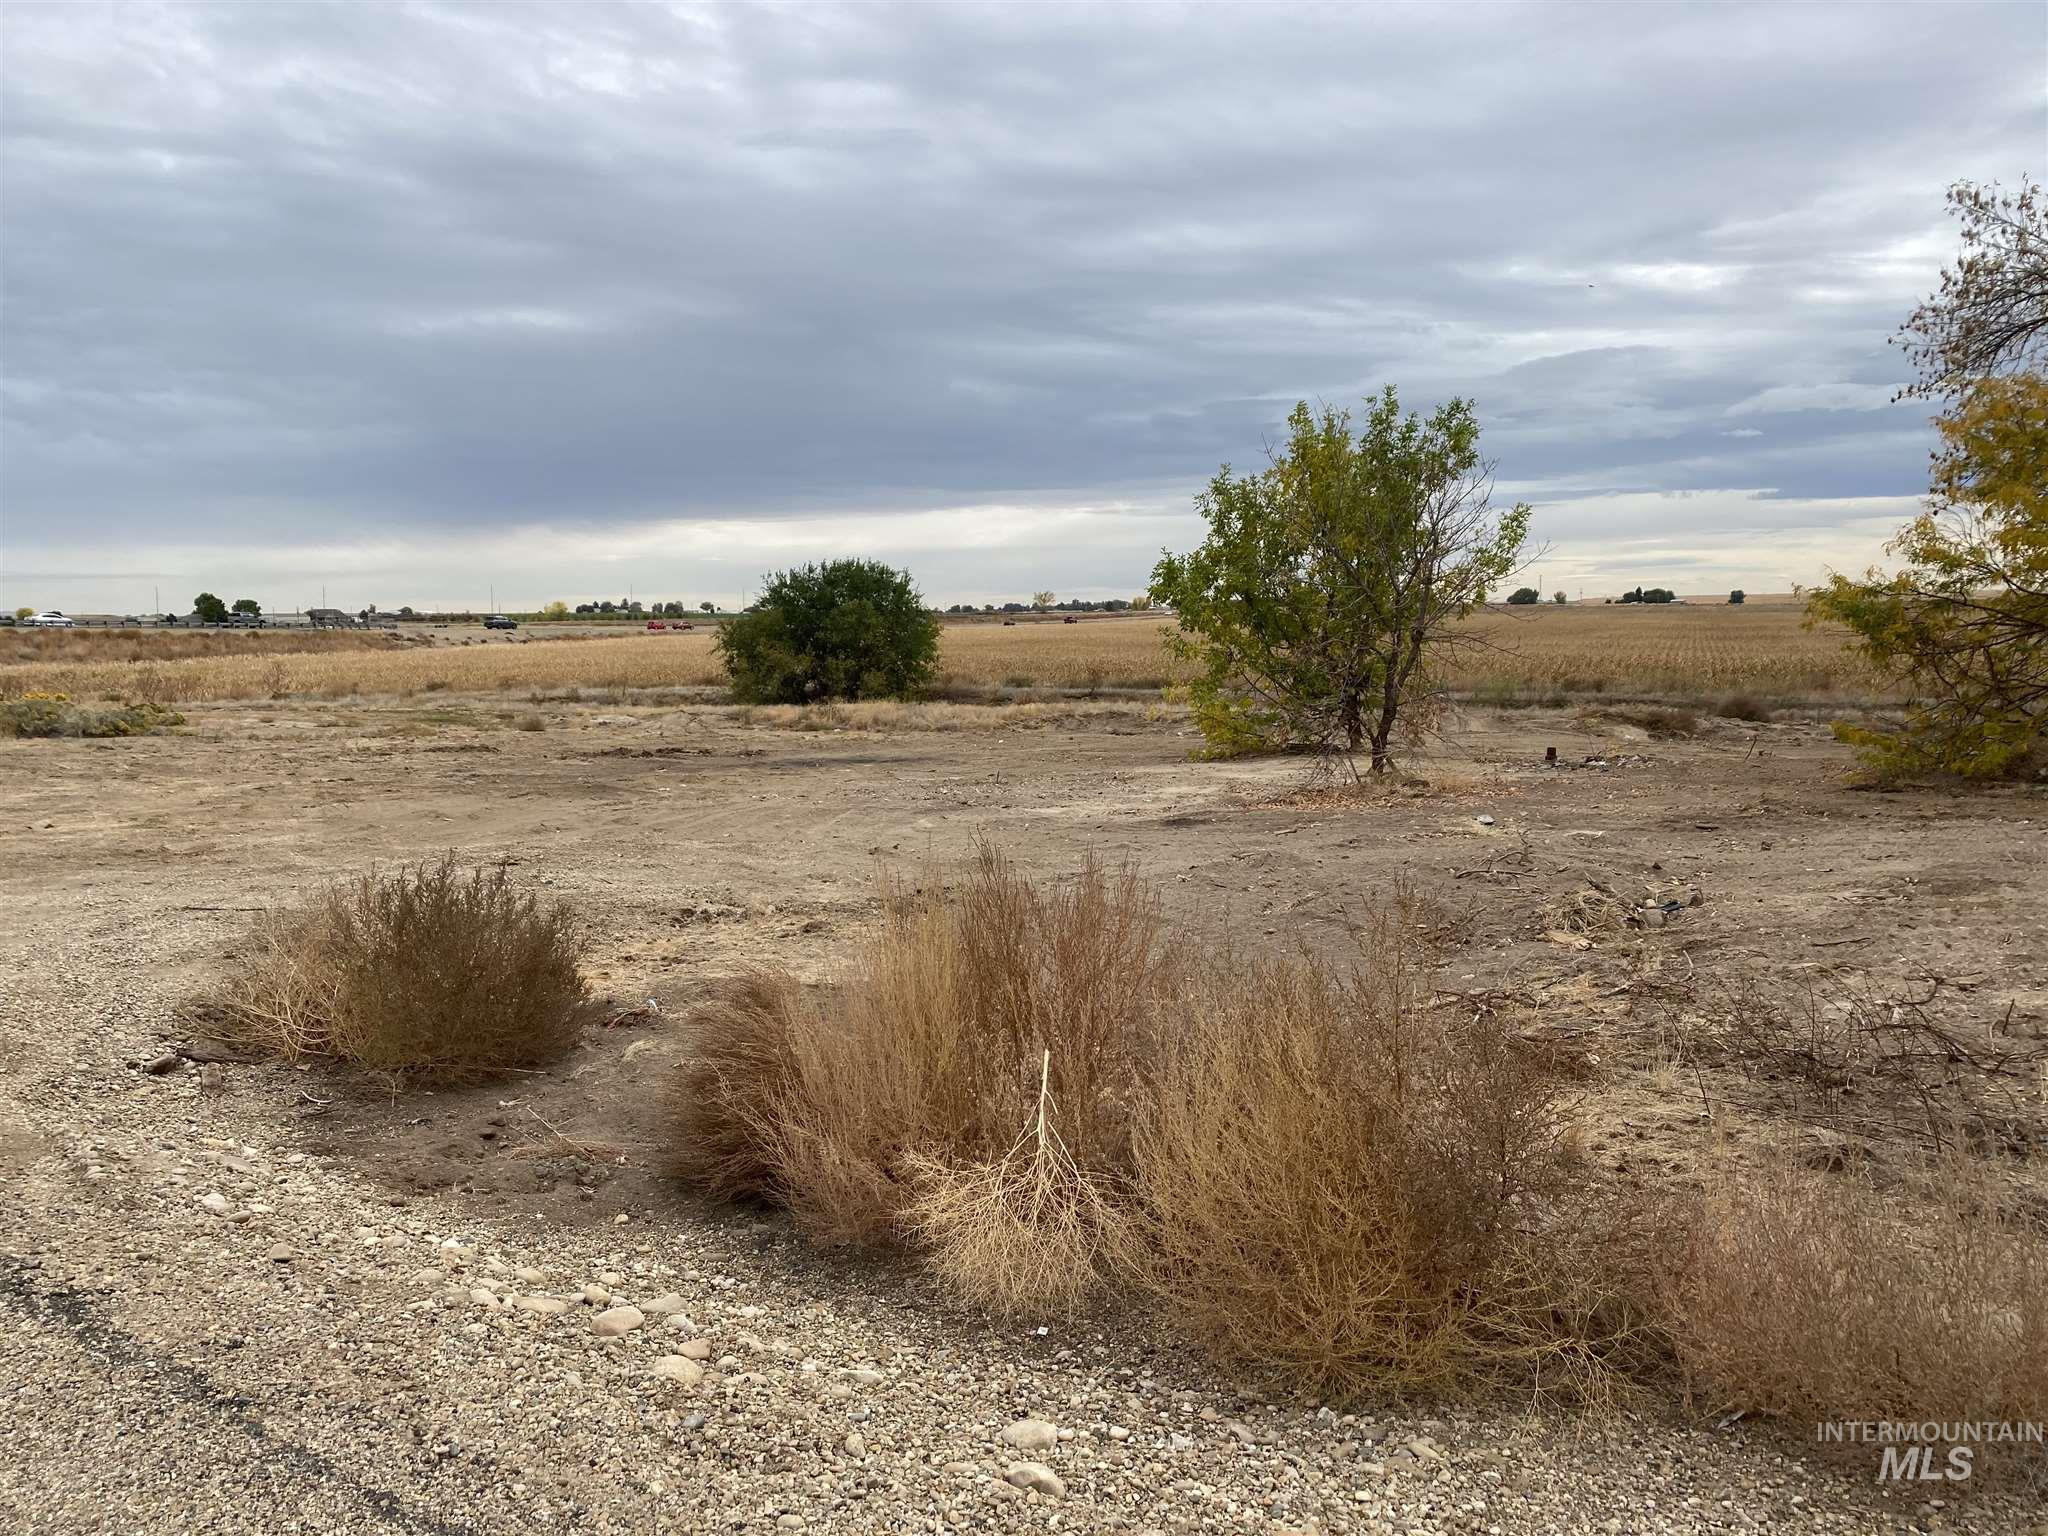 TBD 0 Goodson Rd, Caldwell, Idaho 83607, Land For Sale, Price $135,000, 98784324